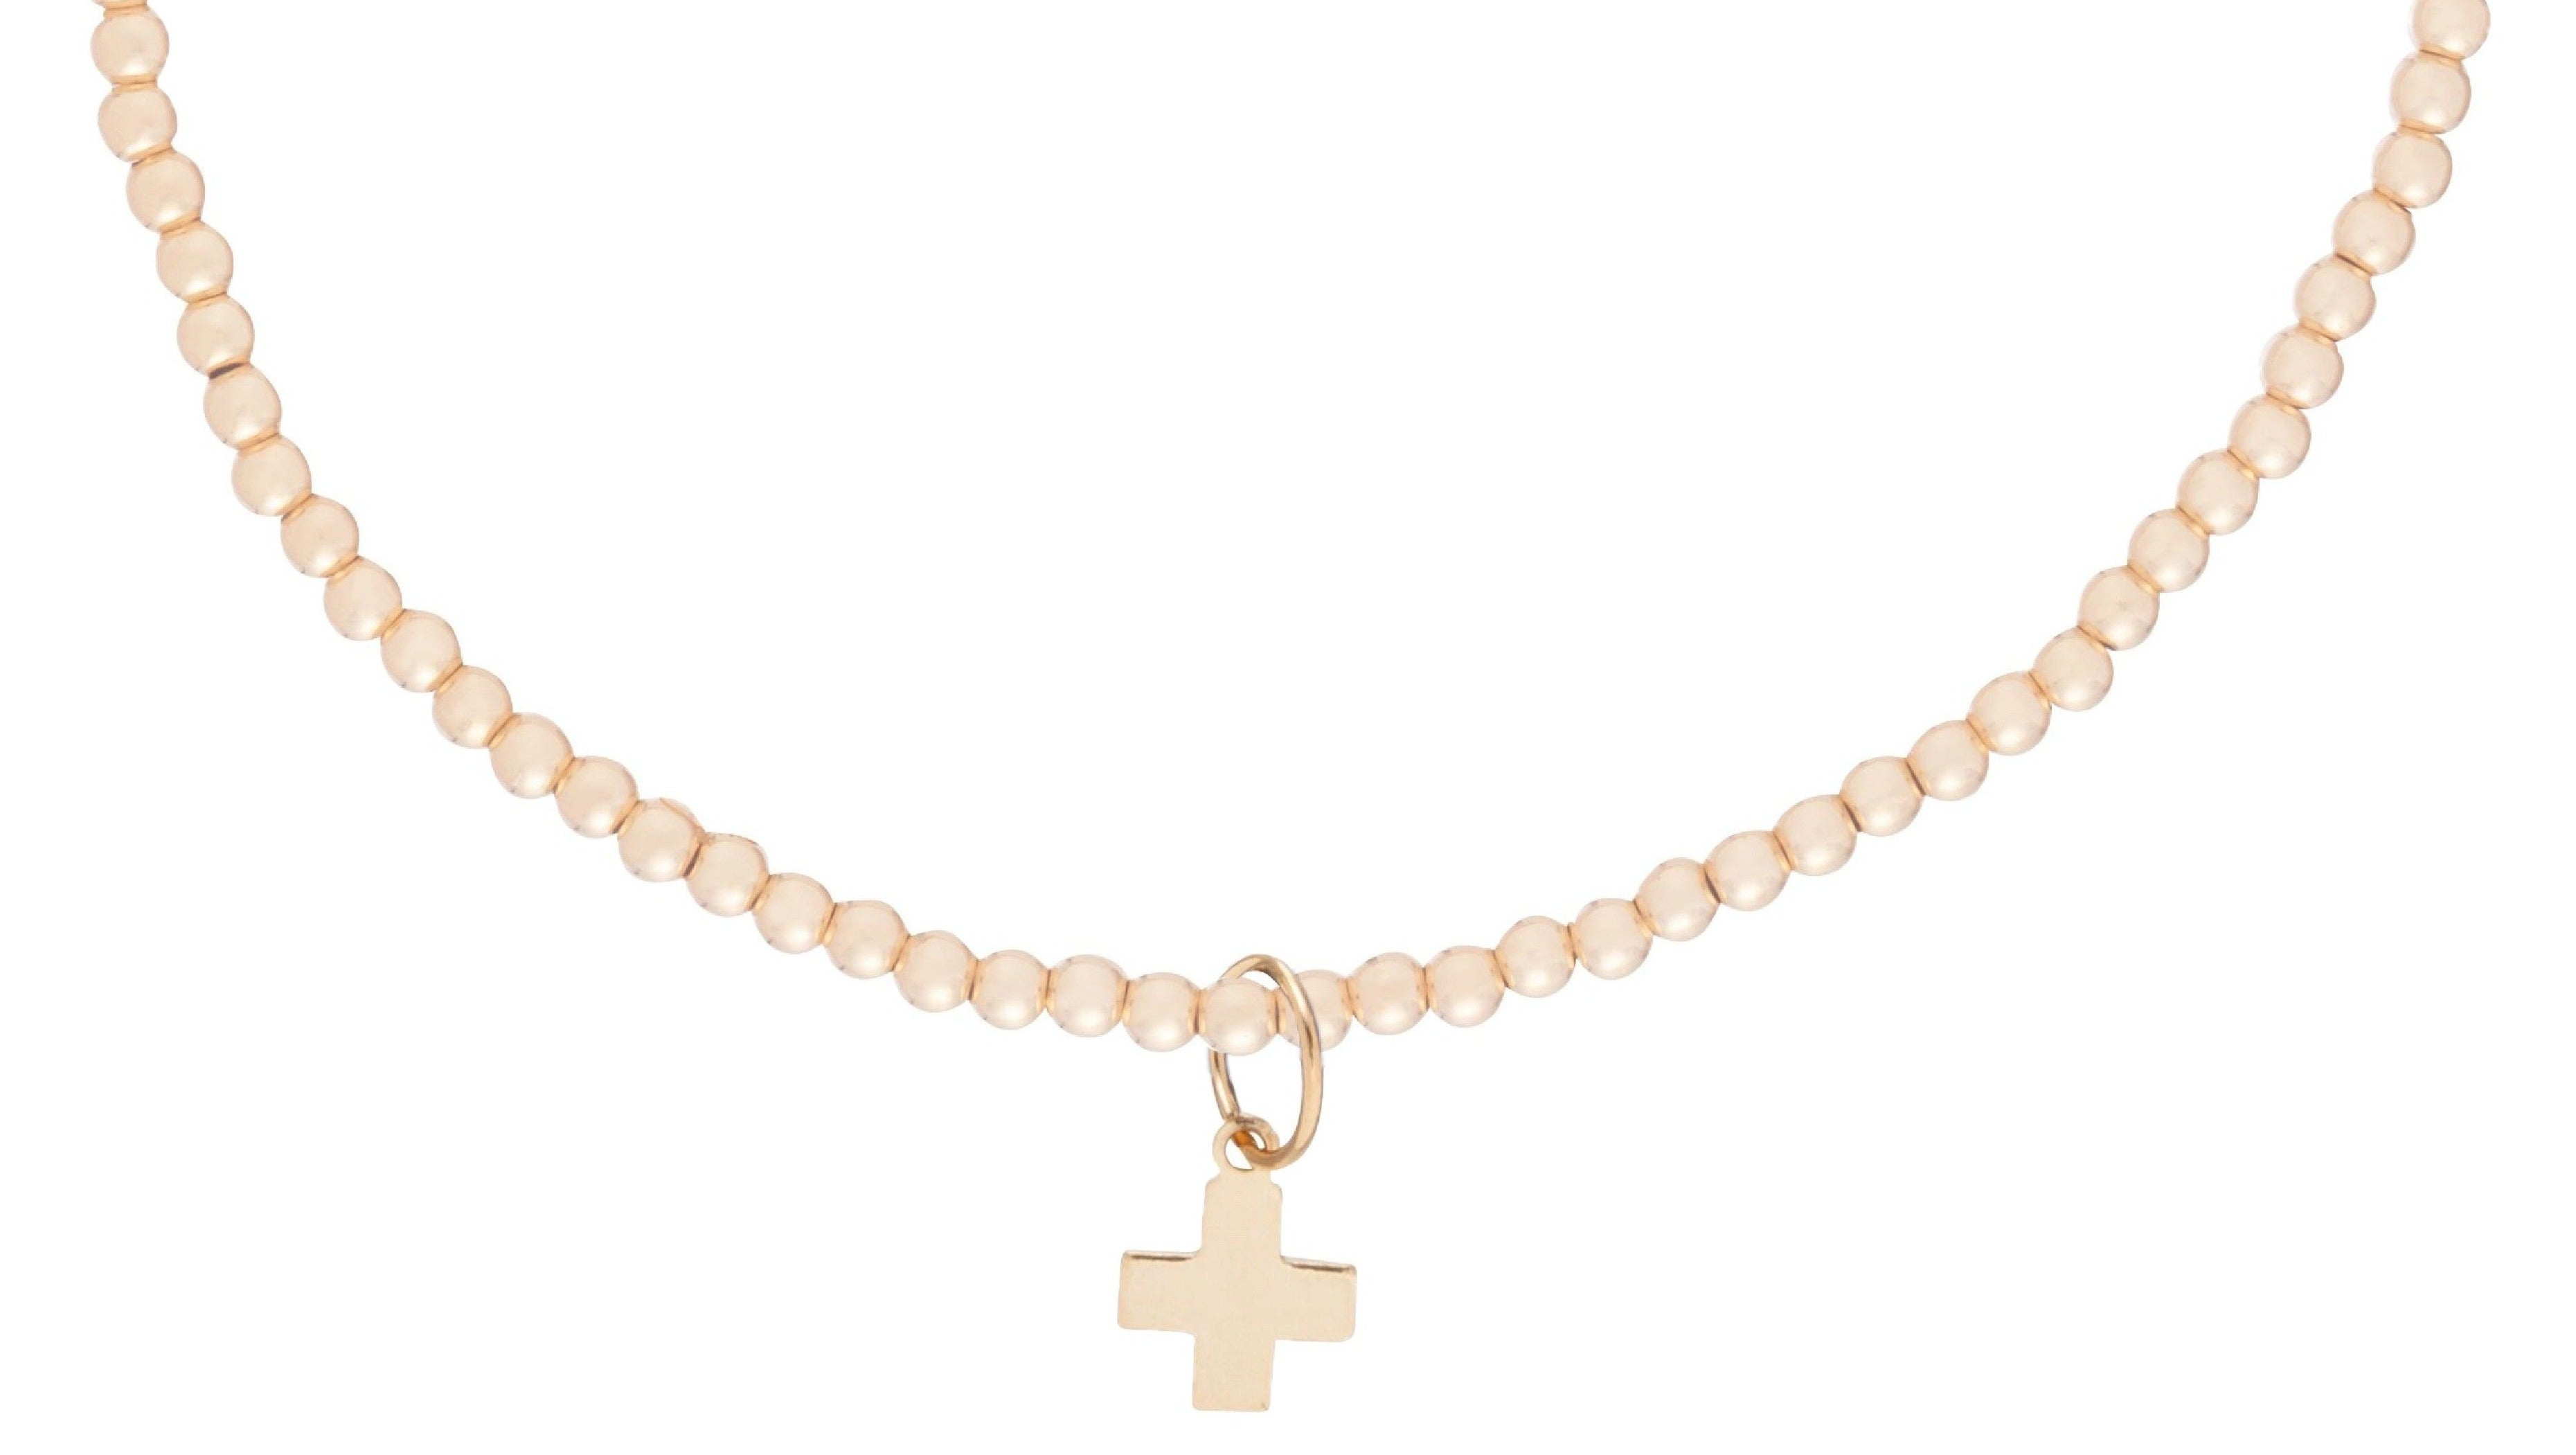 Choker Classic Gold 2mm Bead - Signature Cross Gold Charm